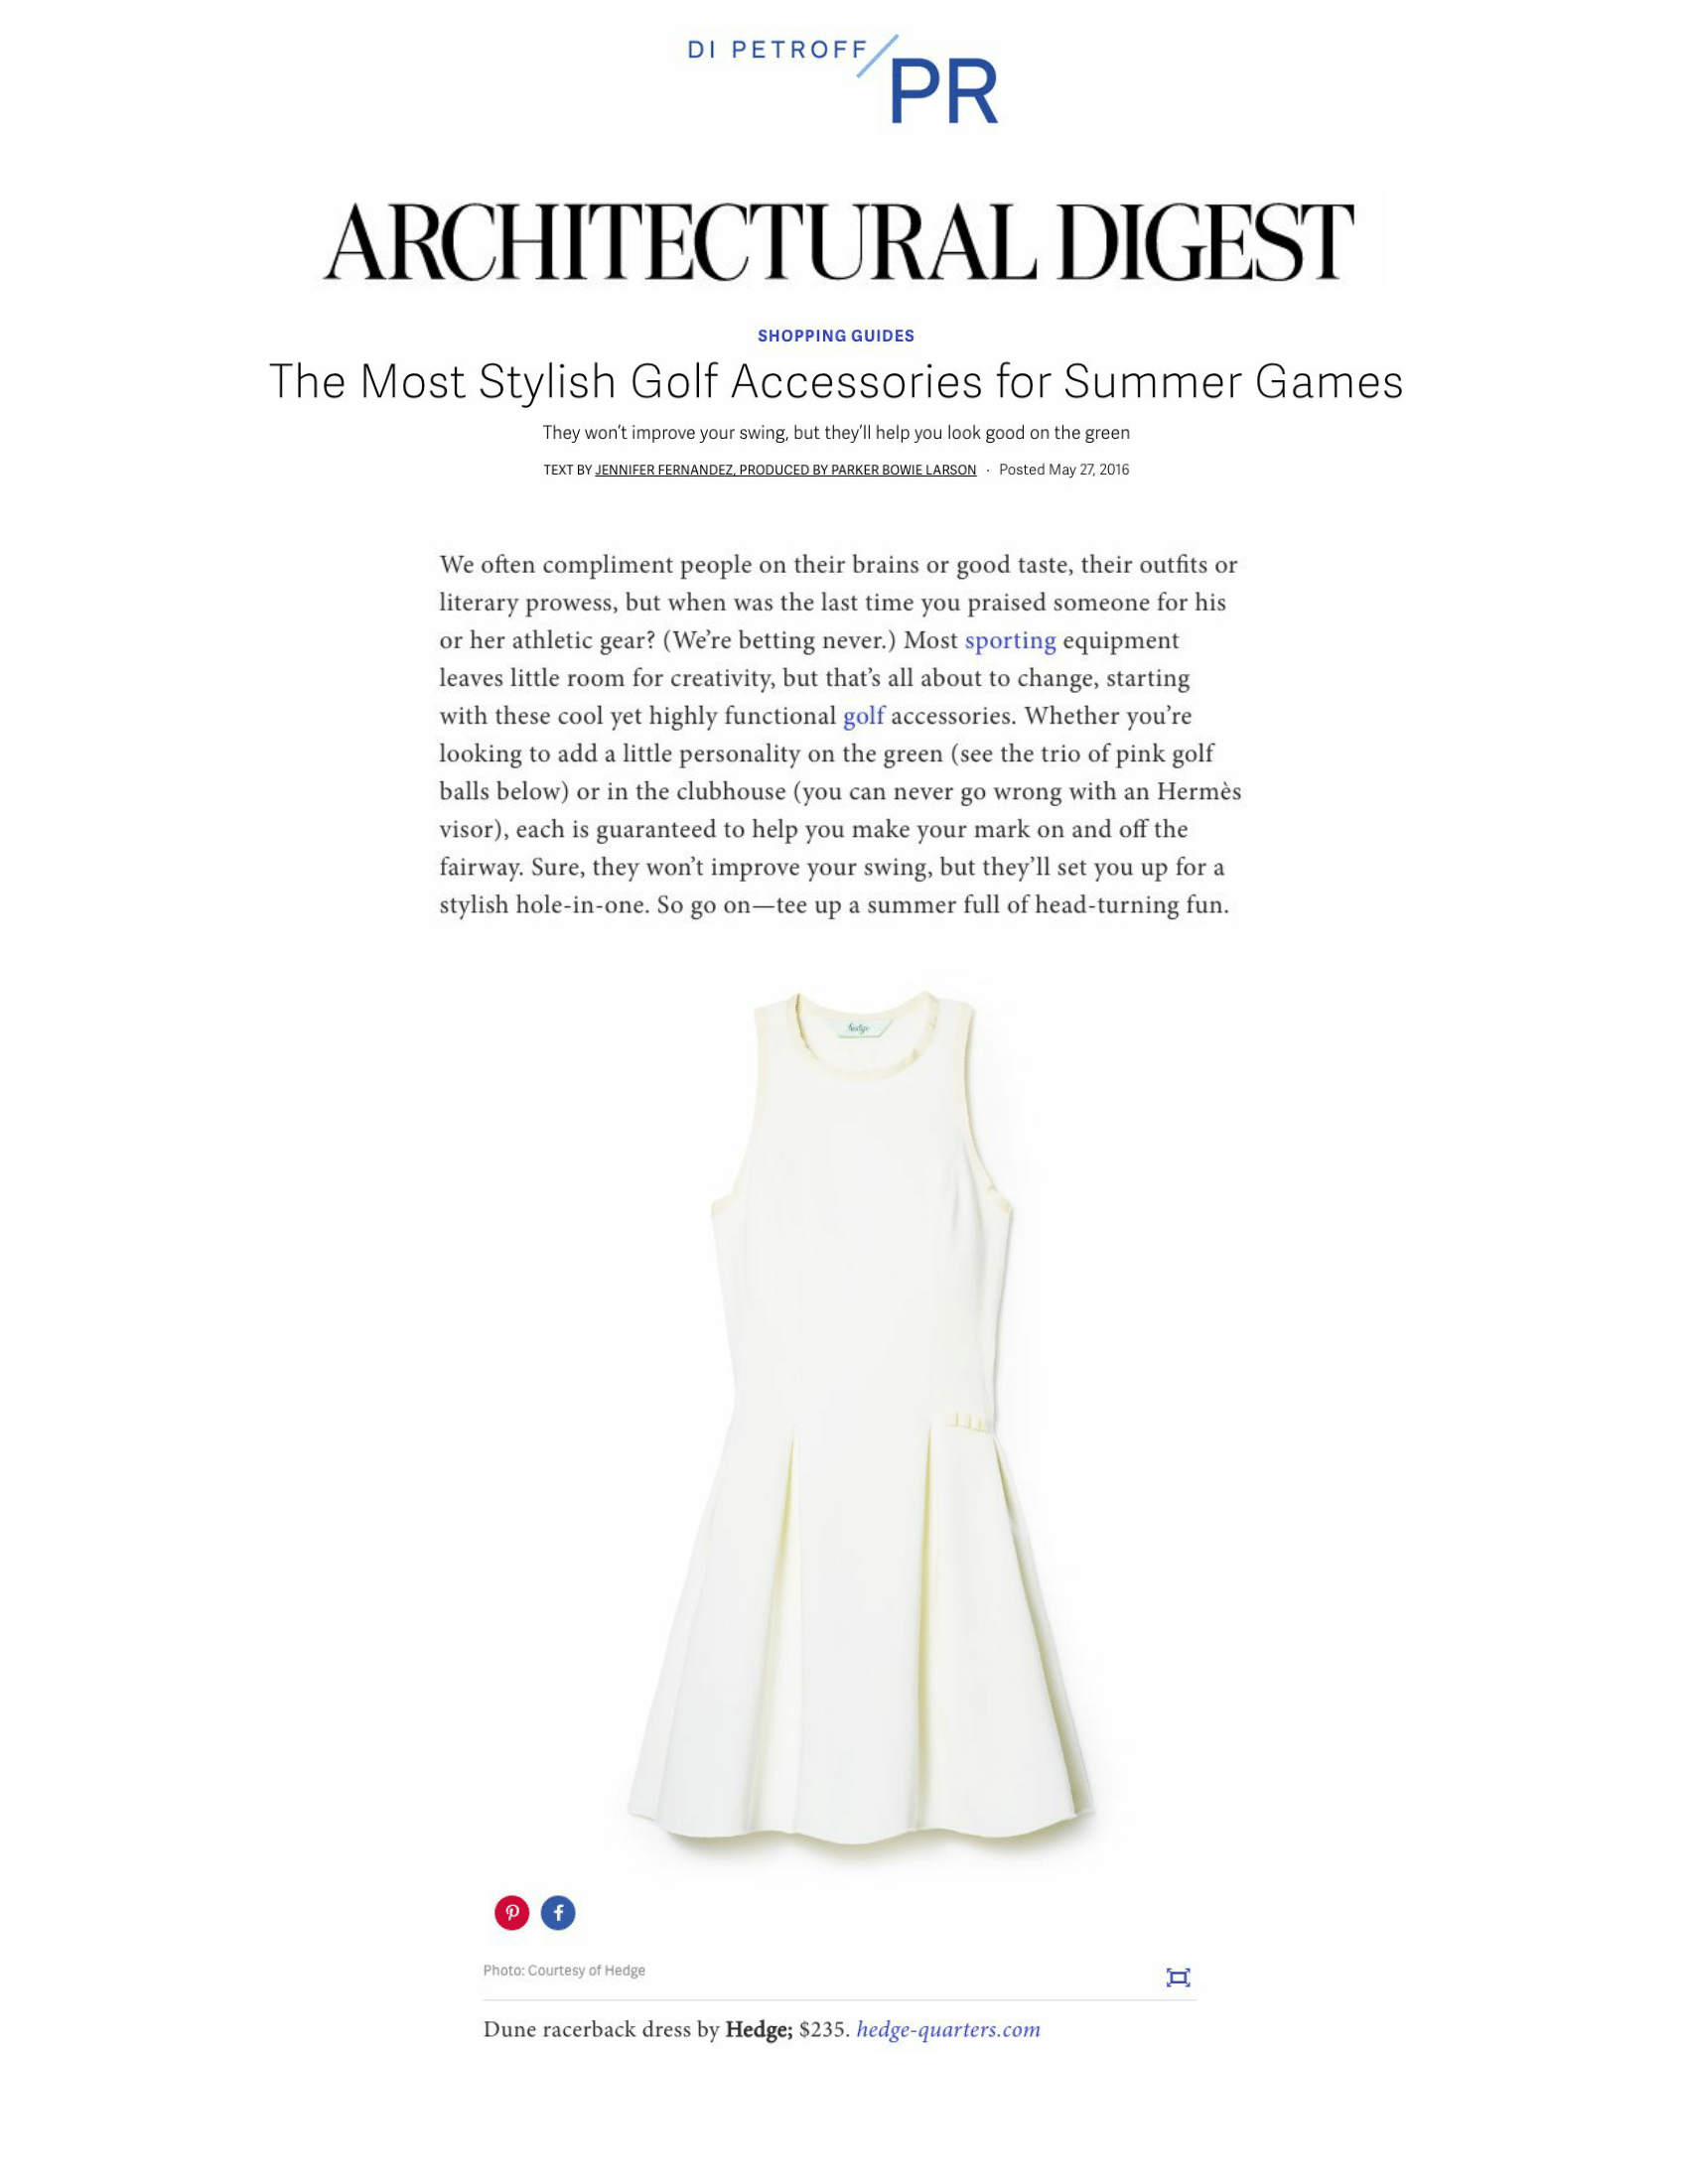 hedge_archdigest (3)-1.png